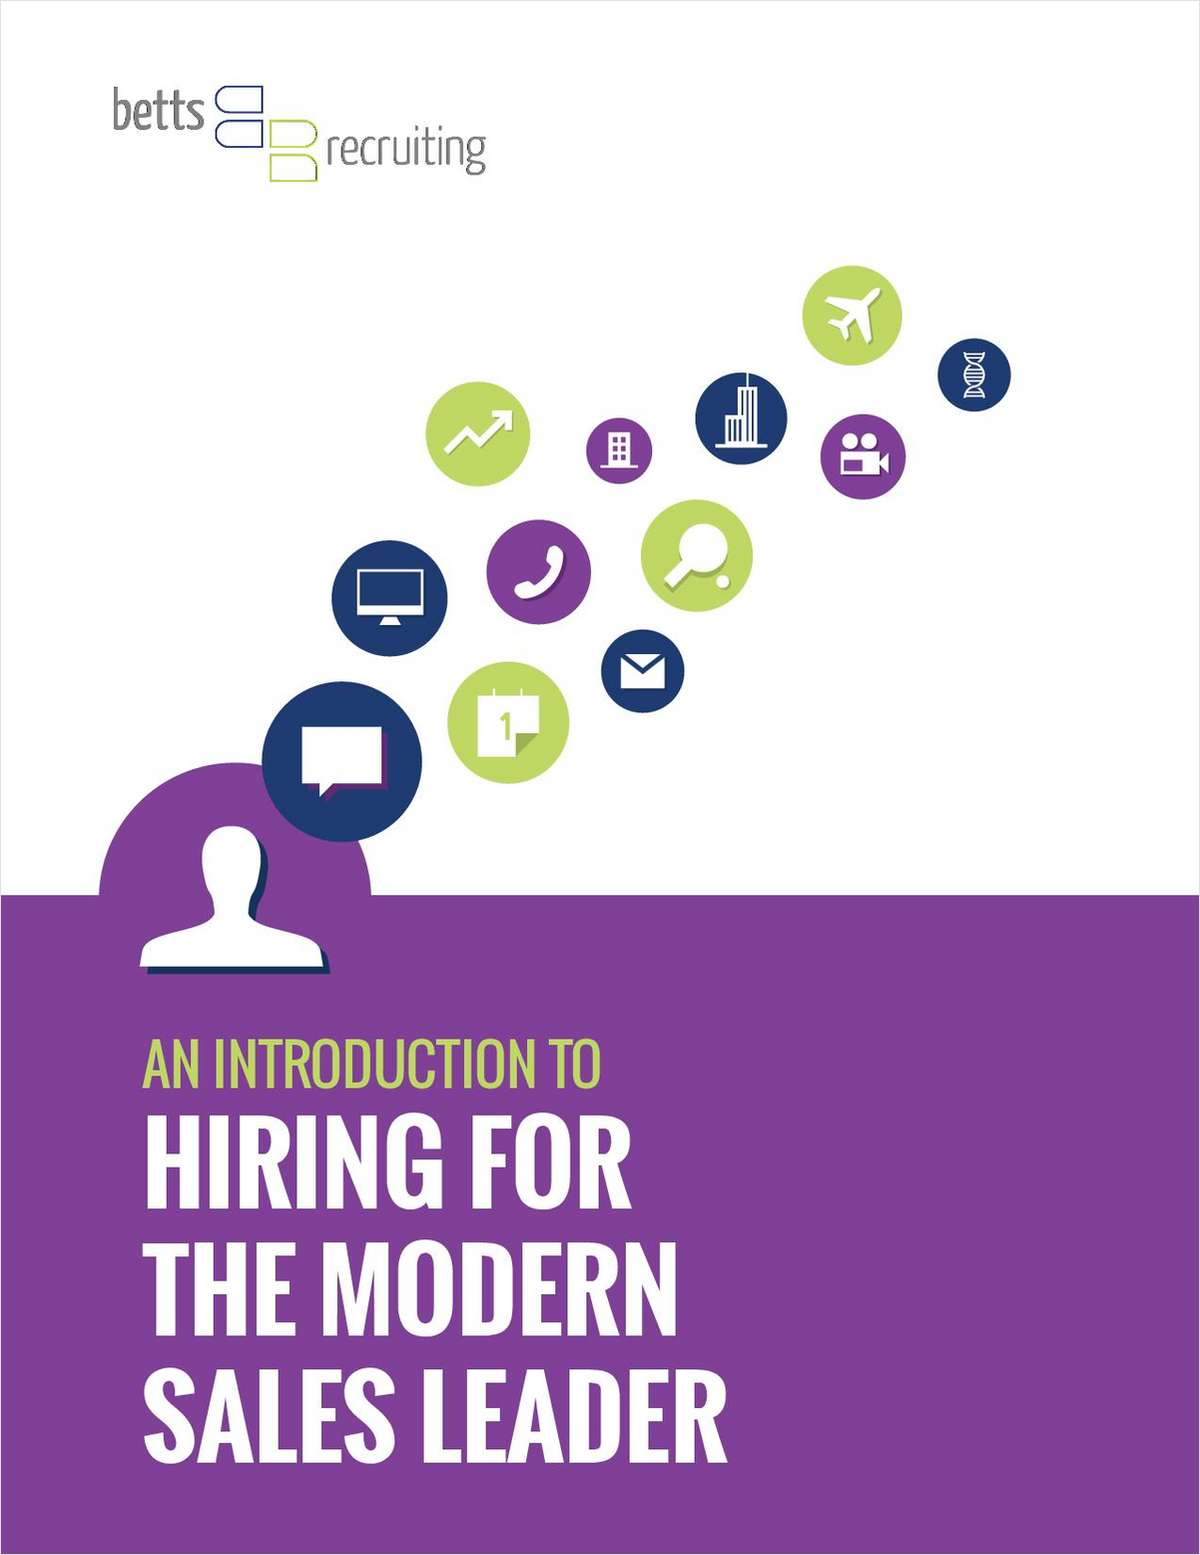 An Introduction to Hiring For the Modern Sales Leader